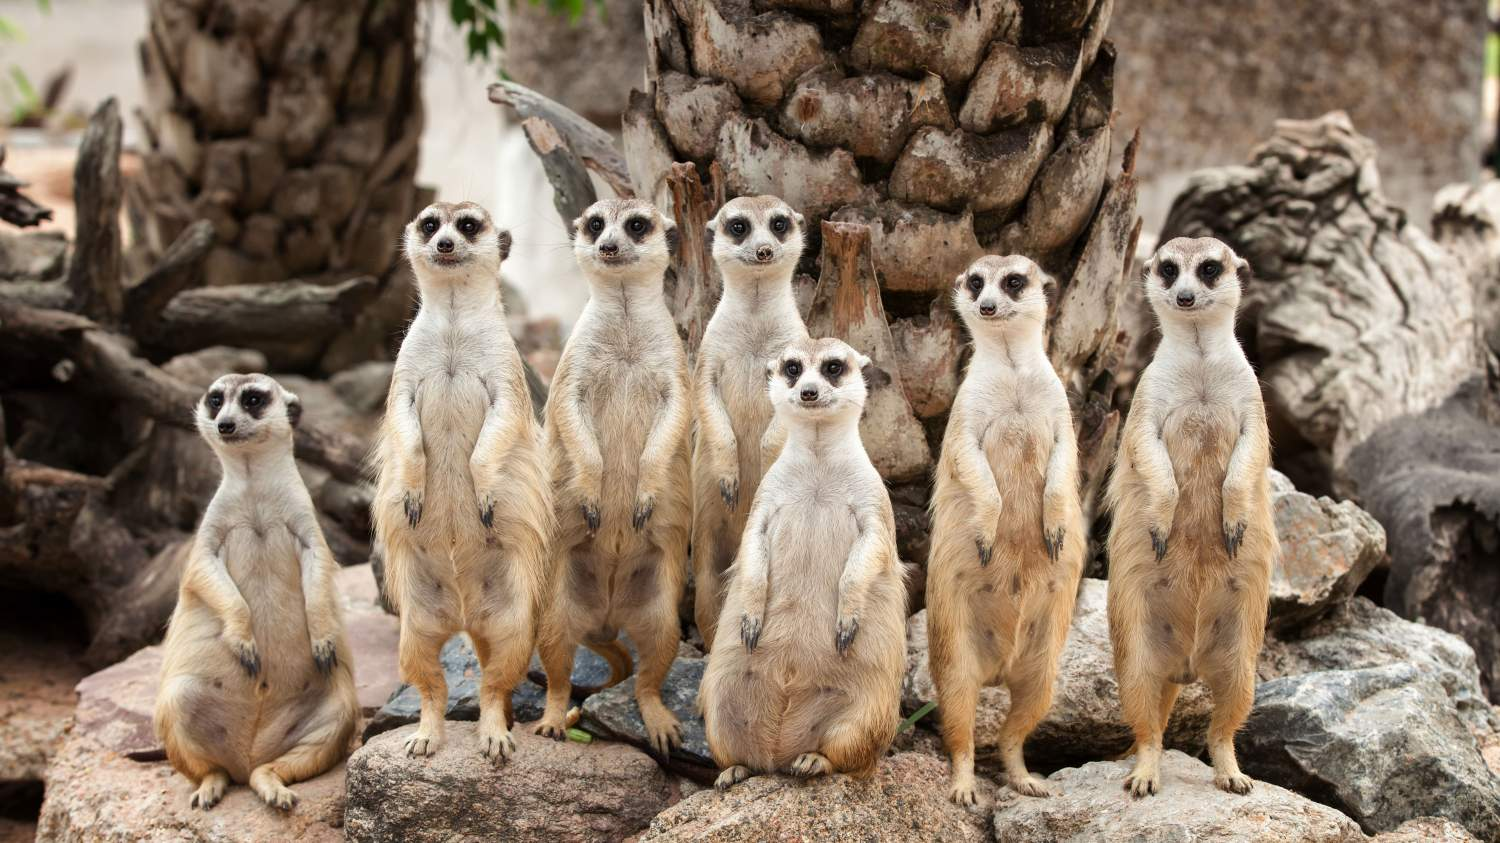 Family portrait of meerkats